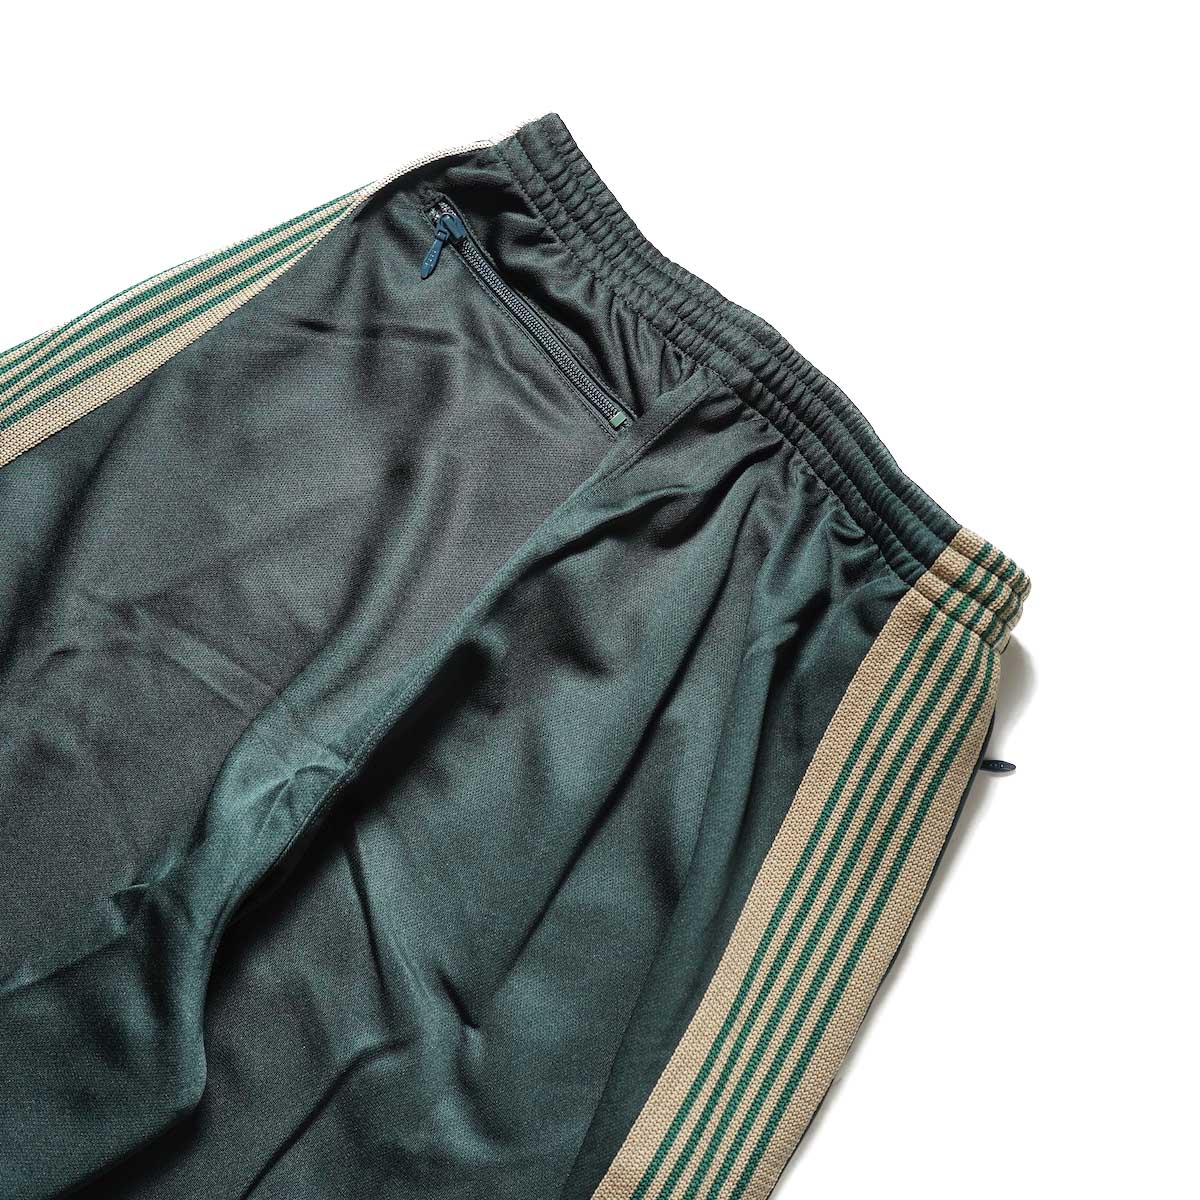 Needles / H.D. Track Pant -PolySmooth (Dk.Green)ヒップポケット